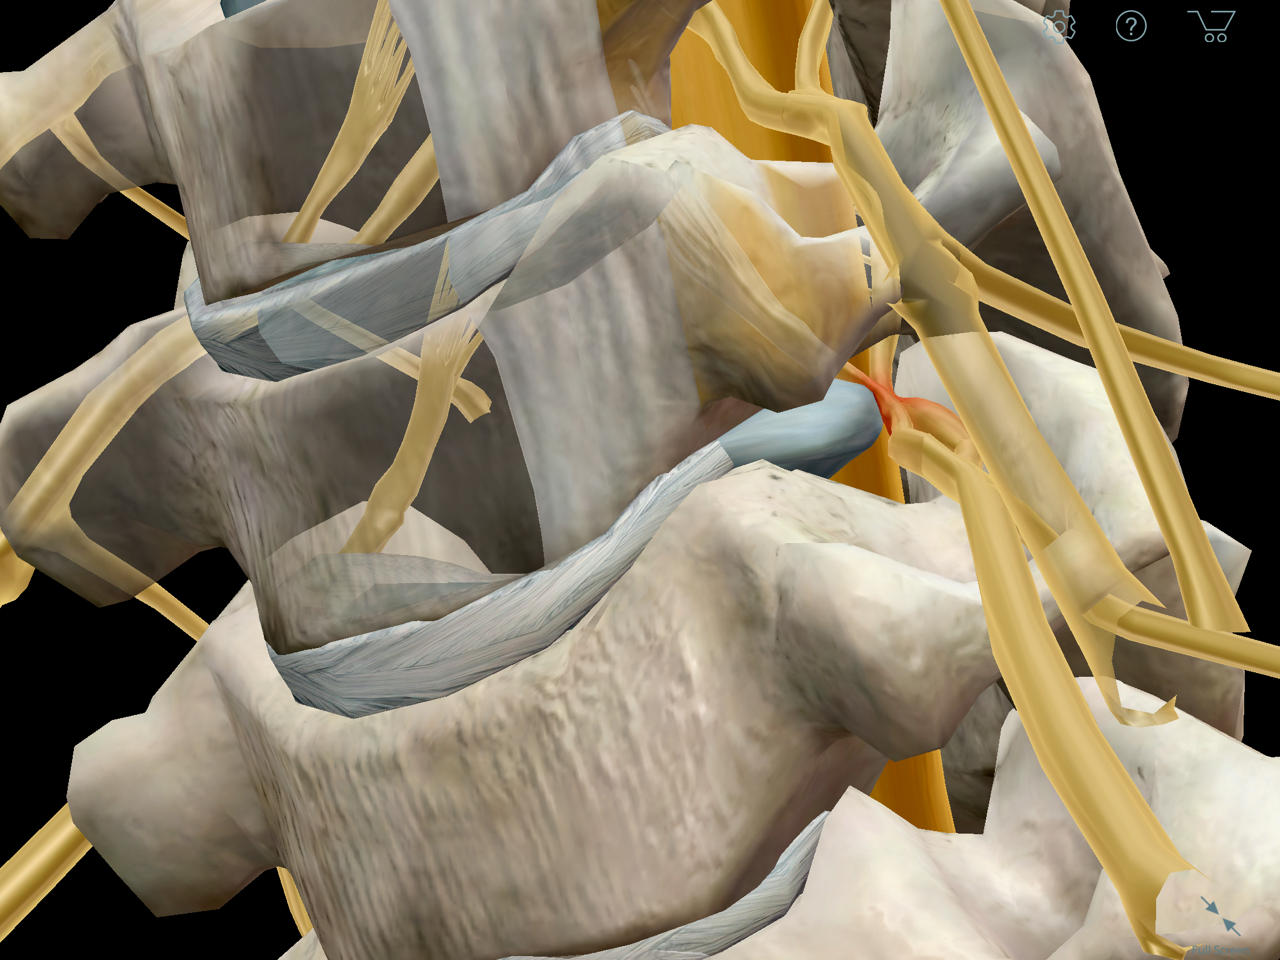 Cervical radiculopathy -- a pinched nerve